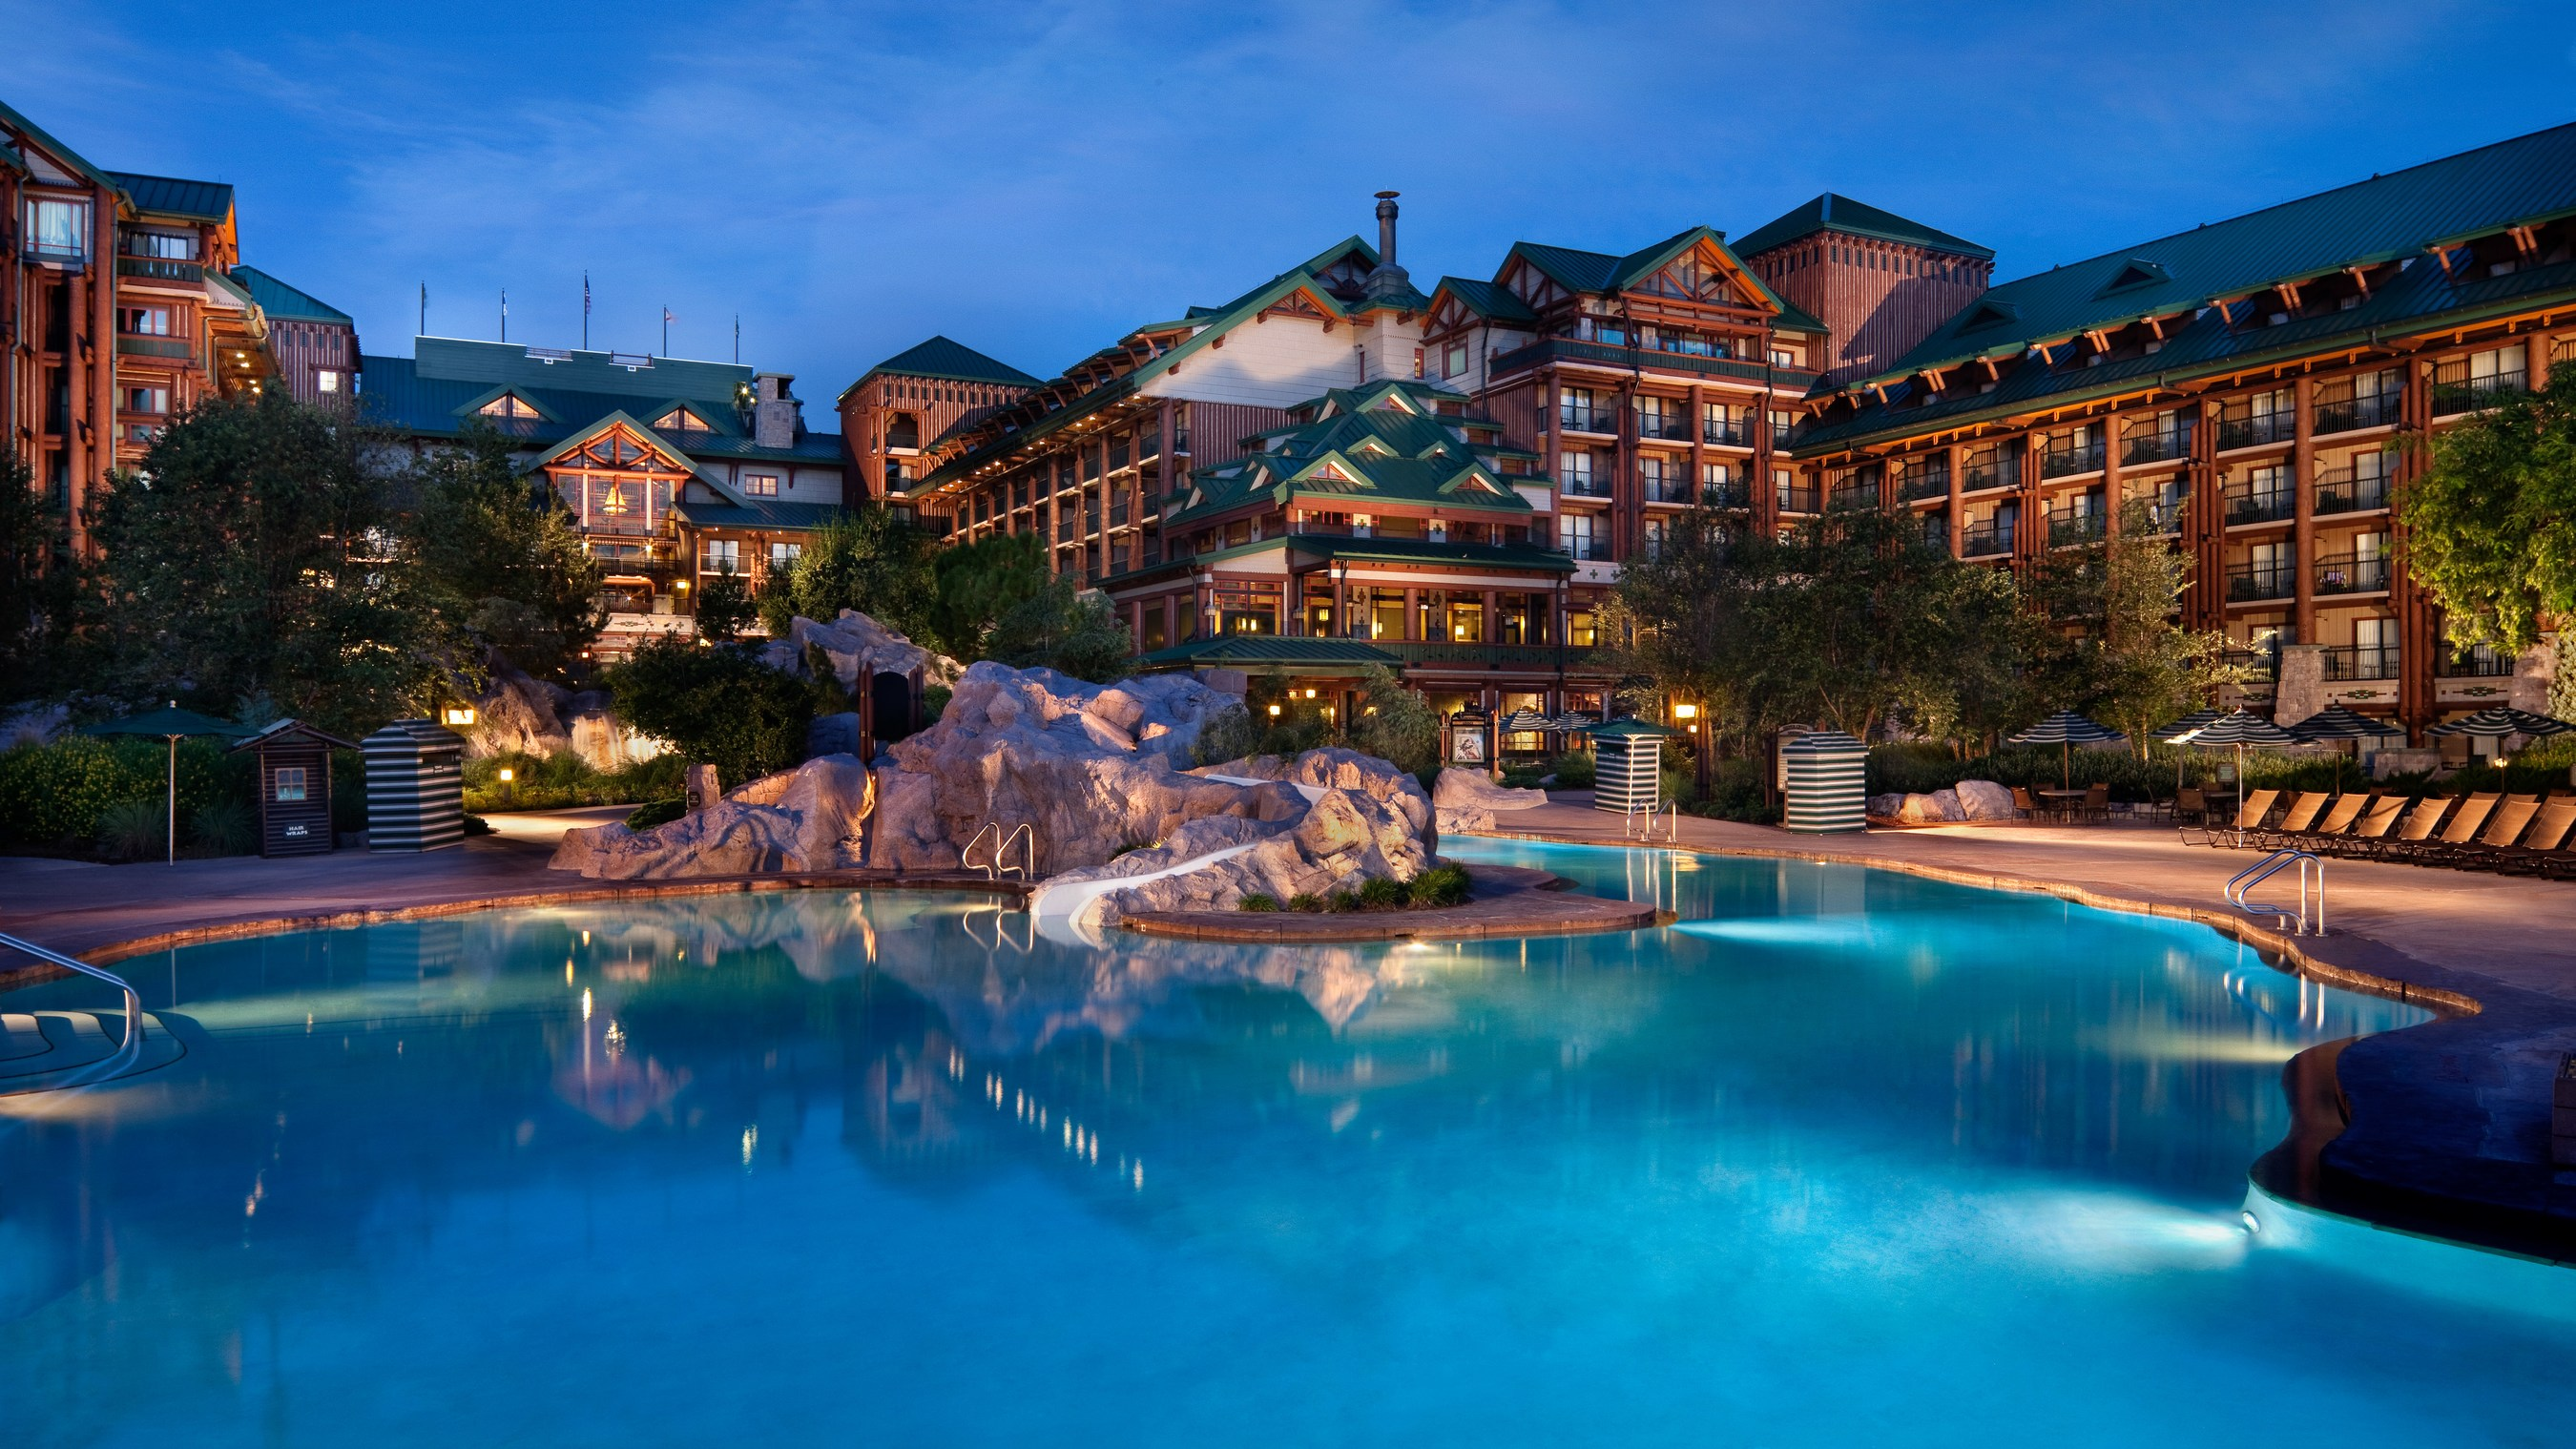 Disney World hotels ranked: Which are the best? | CNN Travel